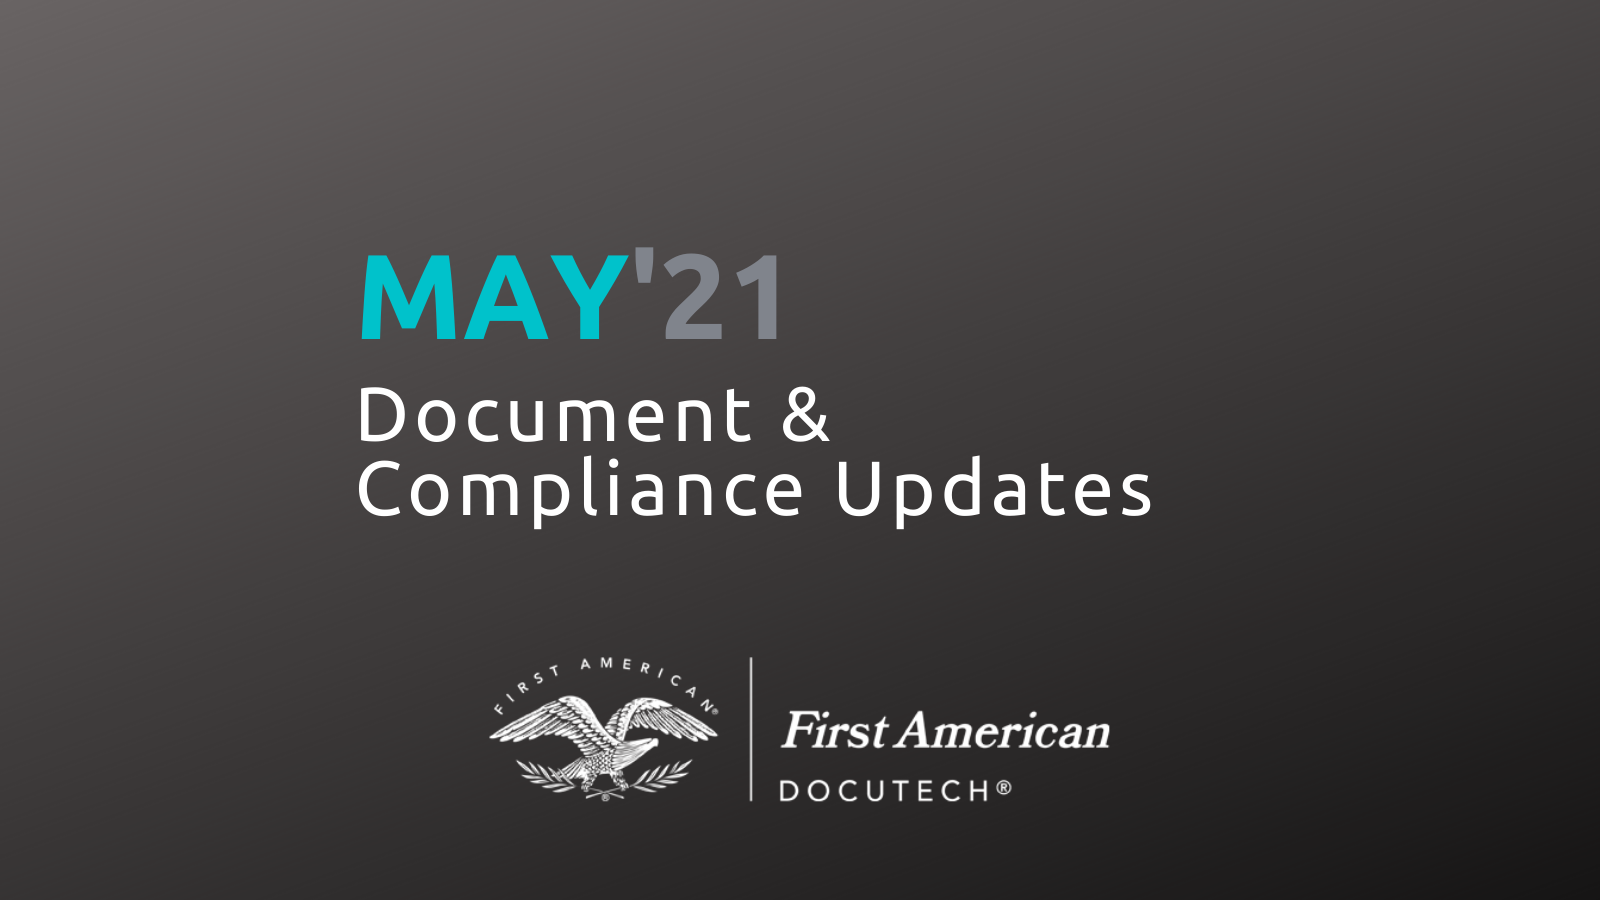 May '21 Compliance Roundup